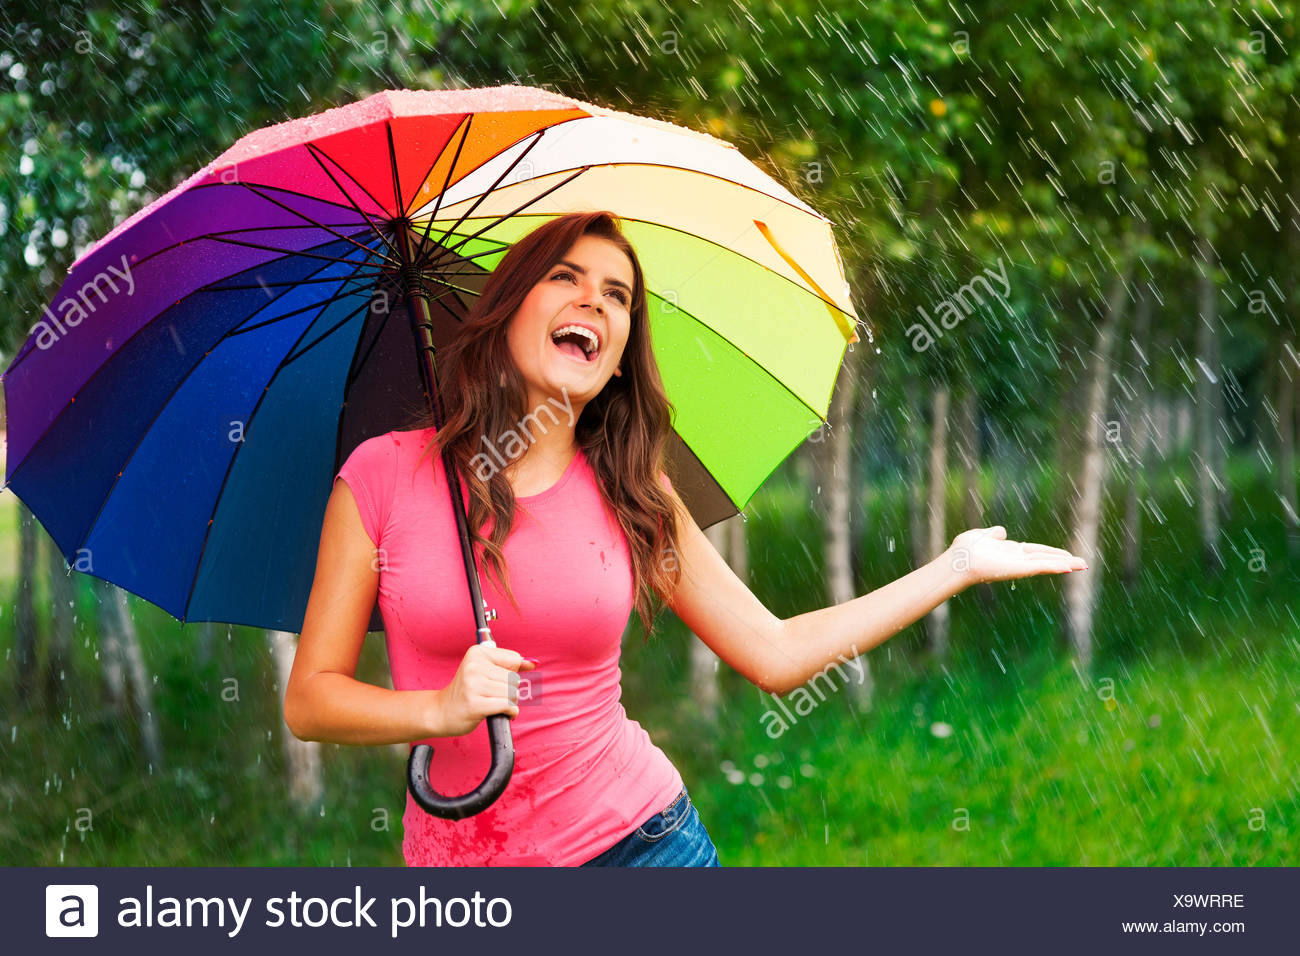 I'm so happy! finally raining! Debica, Poland - Stock Image